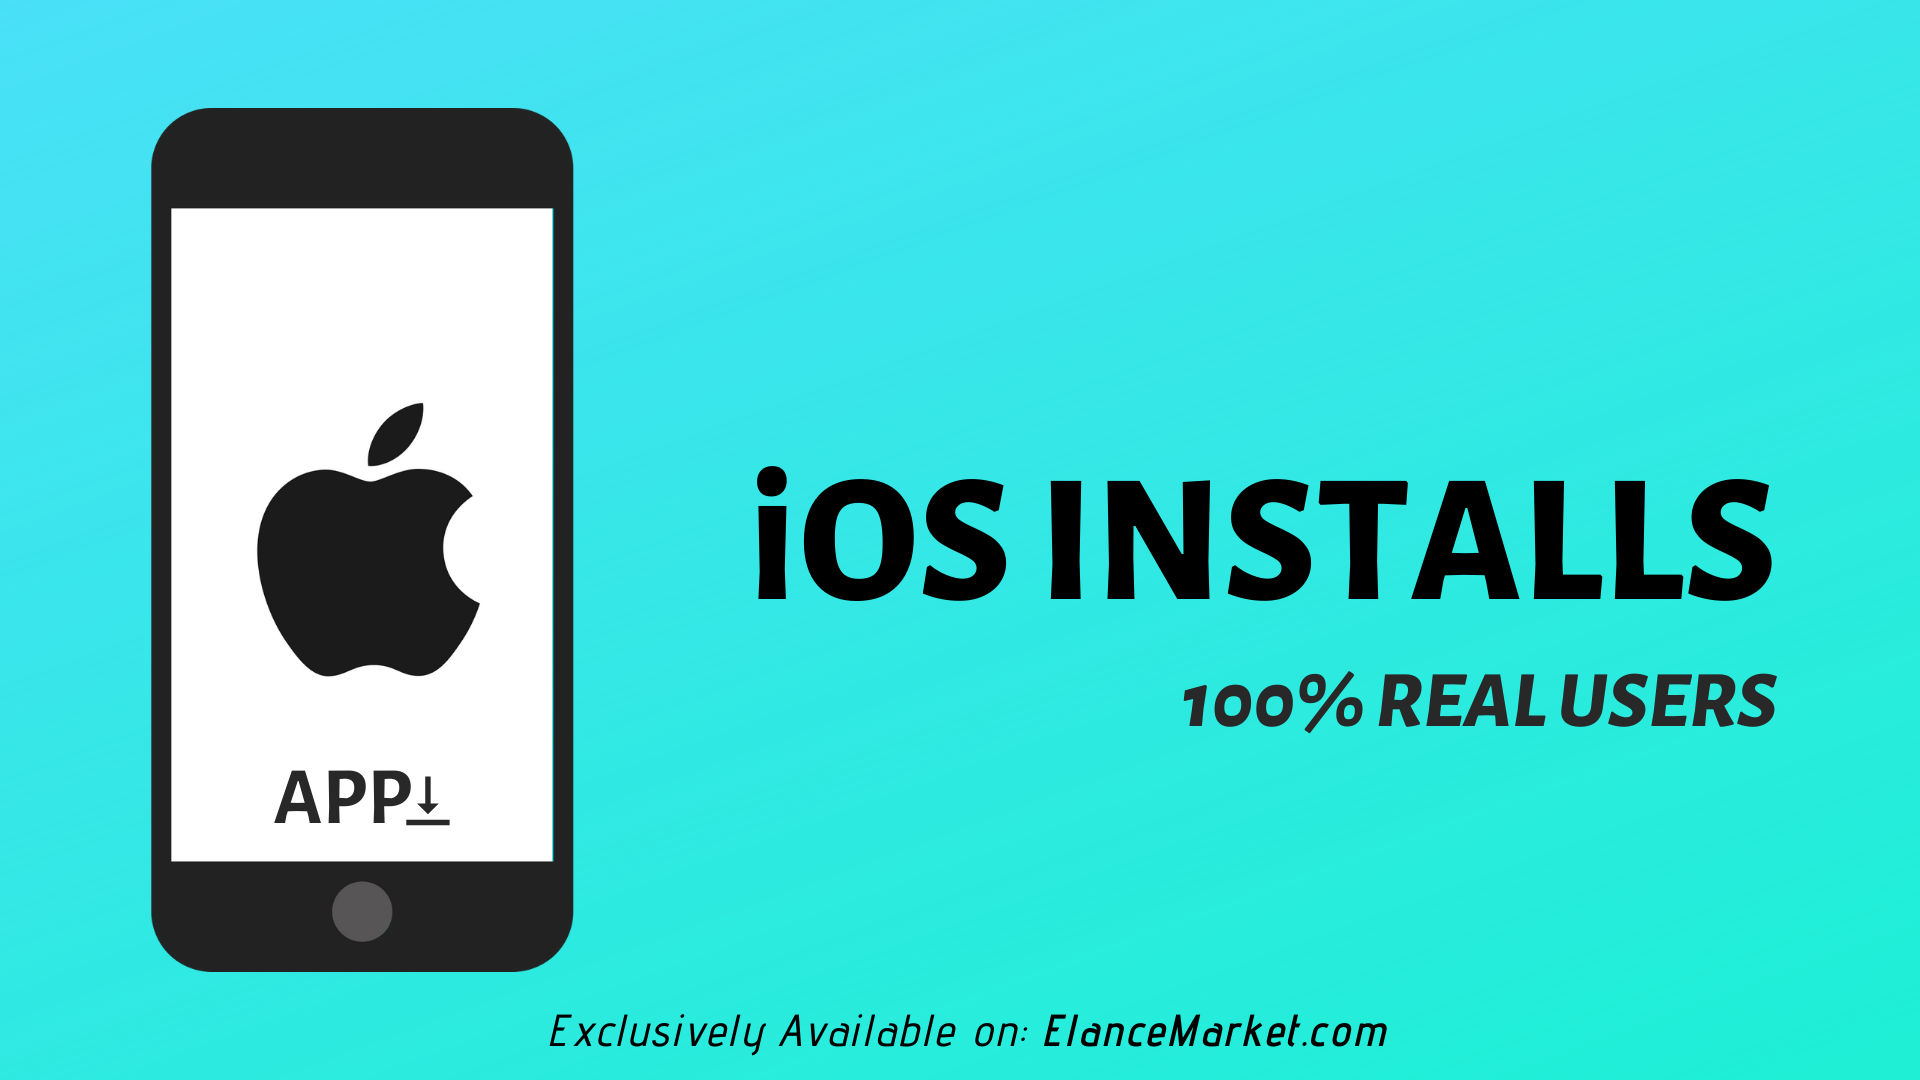 Buy iOS Installs | 100% Real Users